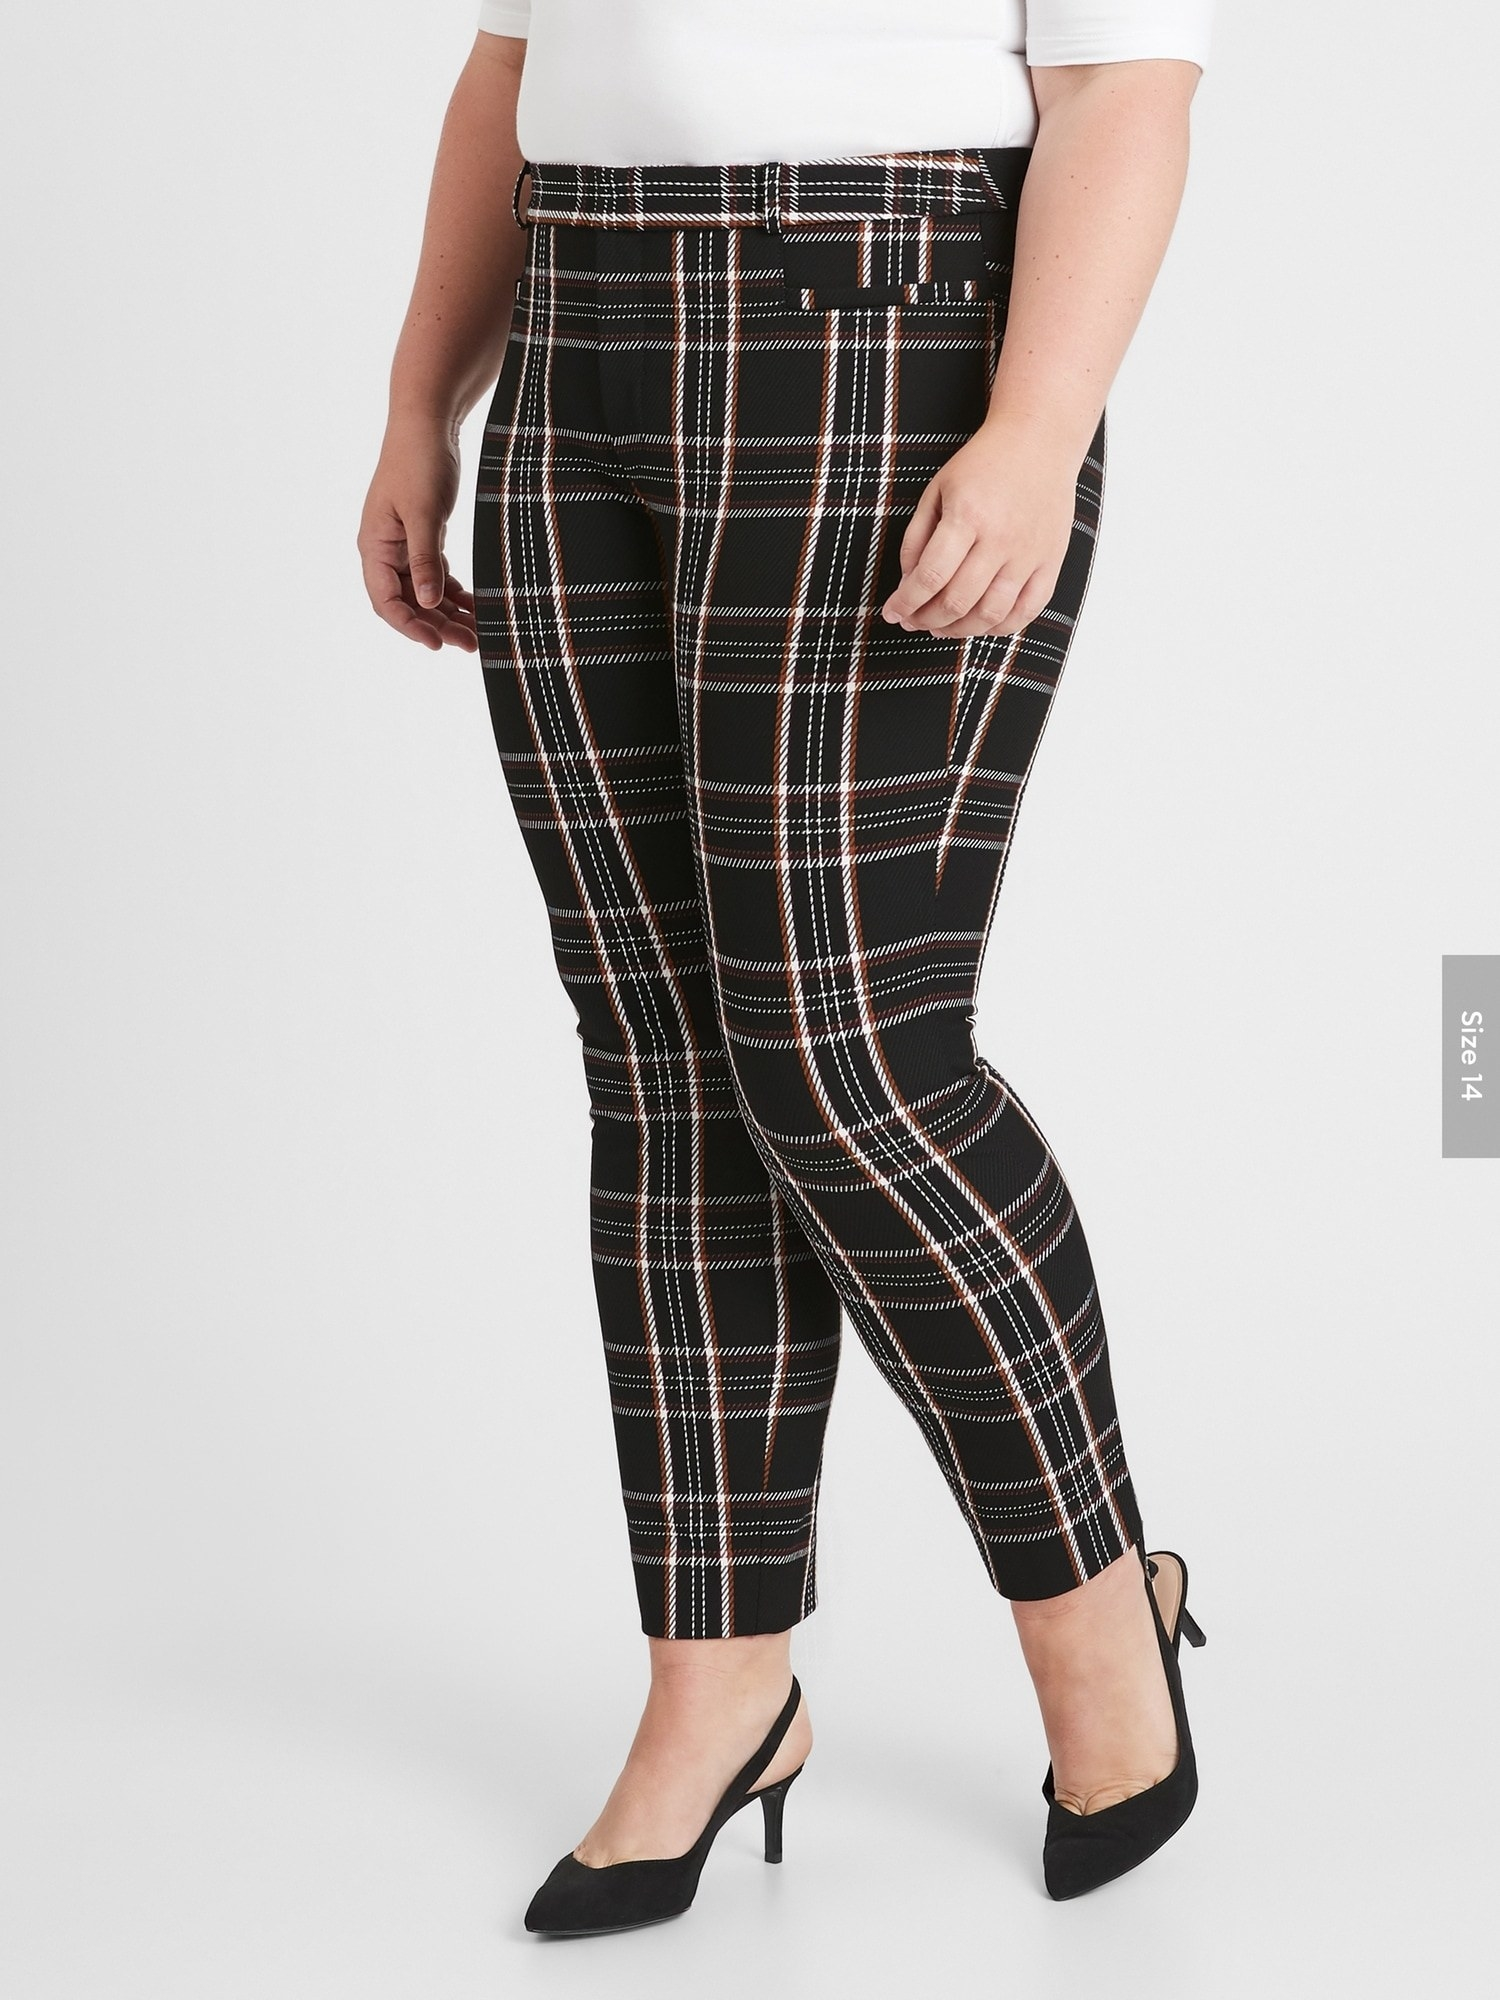 Model wearing the ankle-length pants in black with a white and red plaid pattern